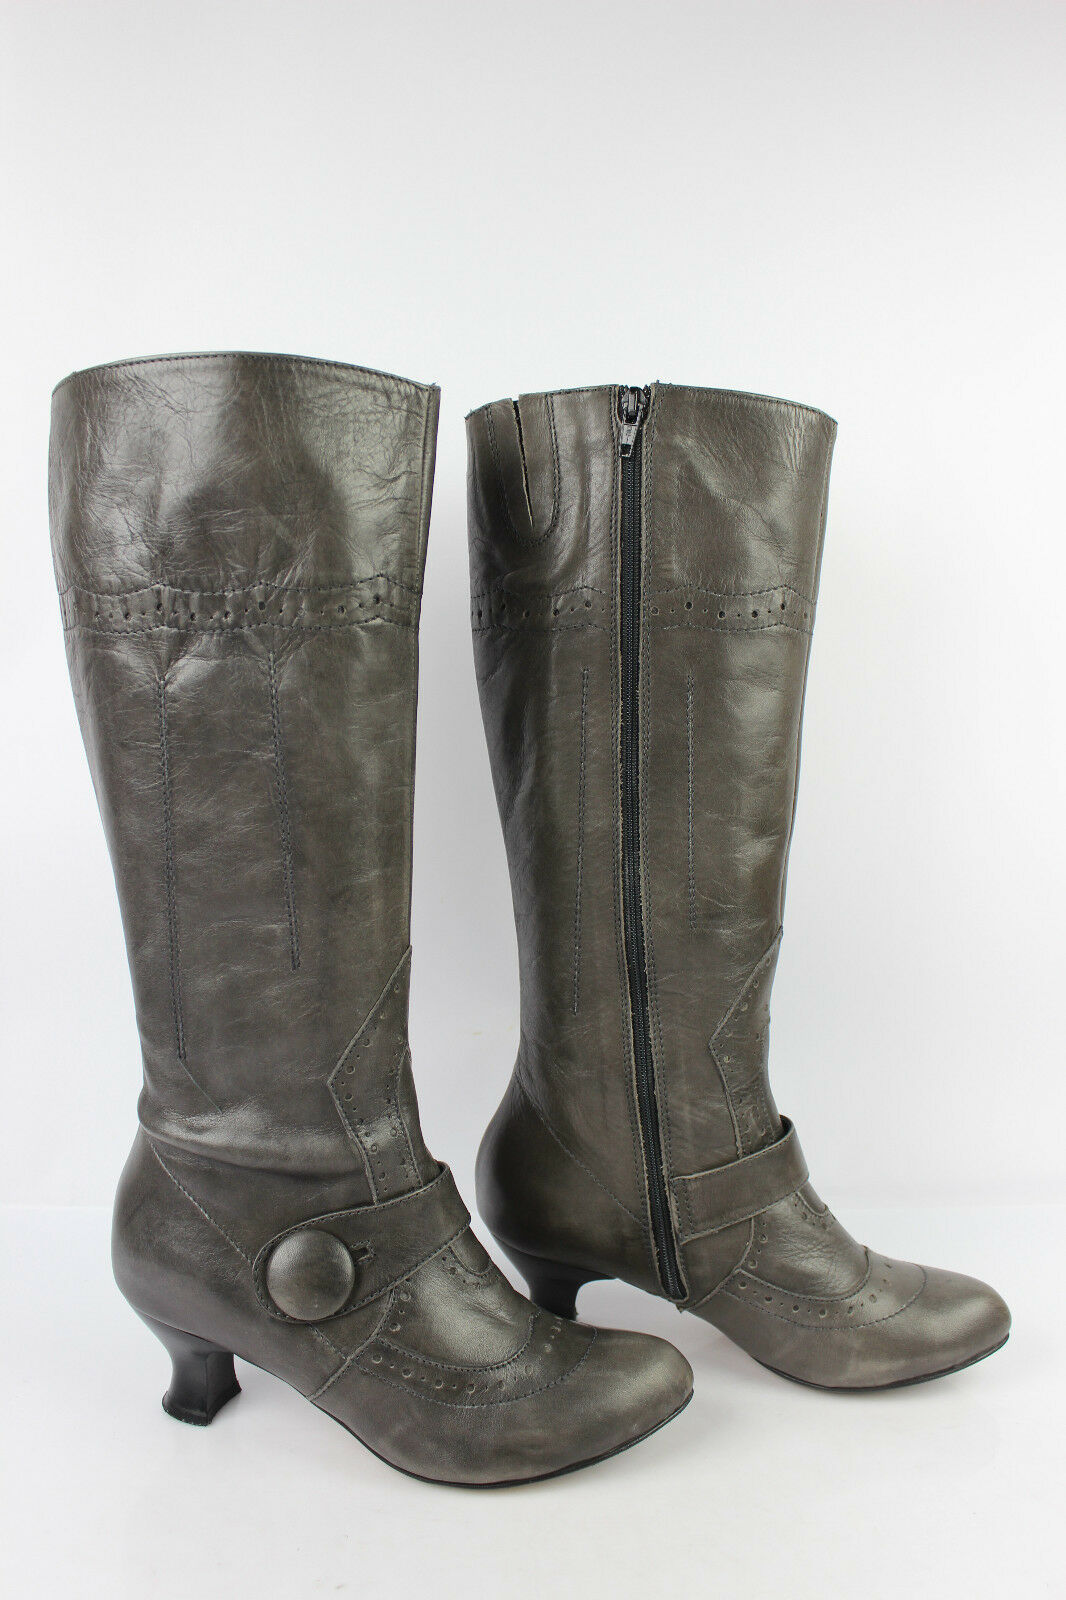 Boots EMERGENCE Leather Grey taupe T 36 VERY GOOD CONDITION